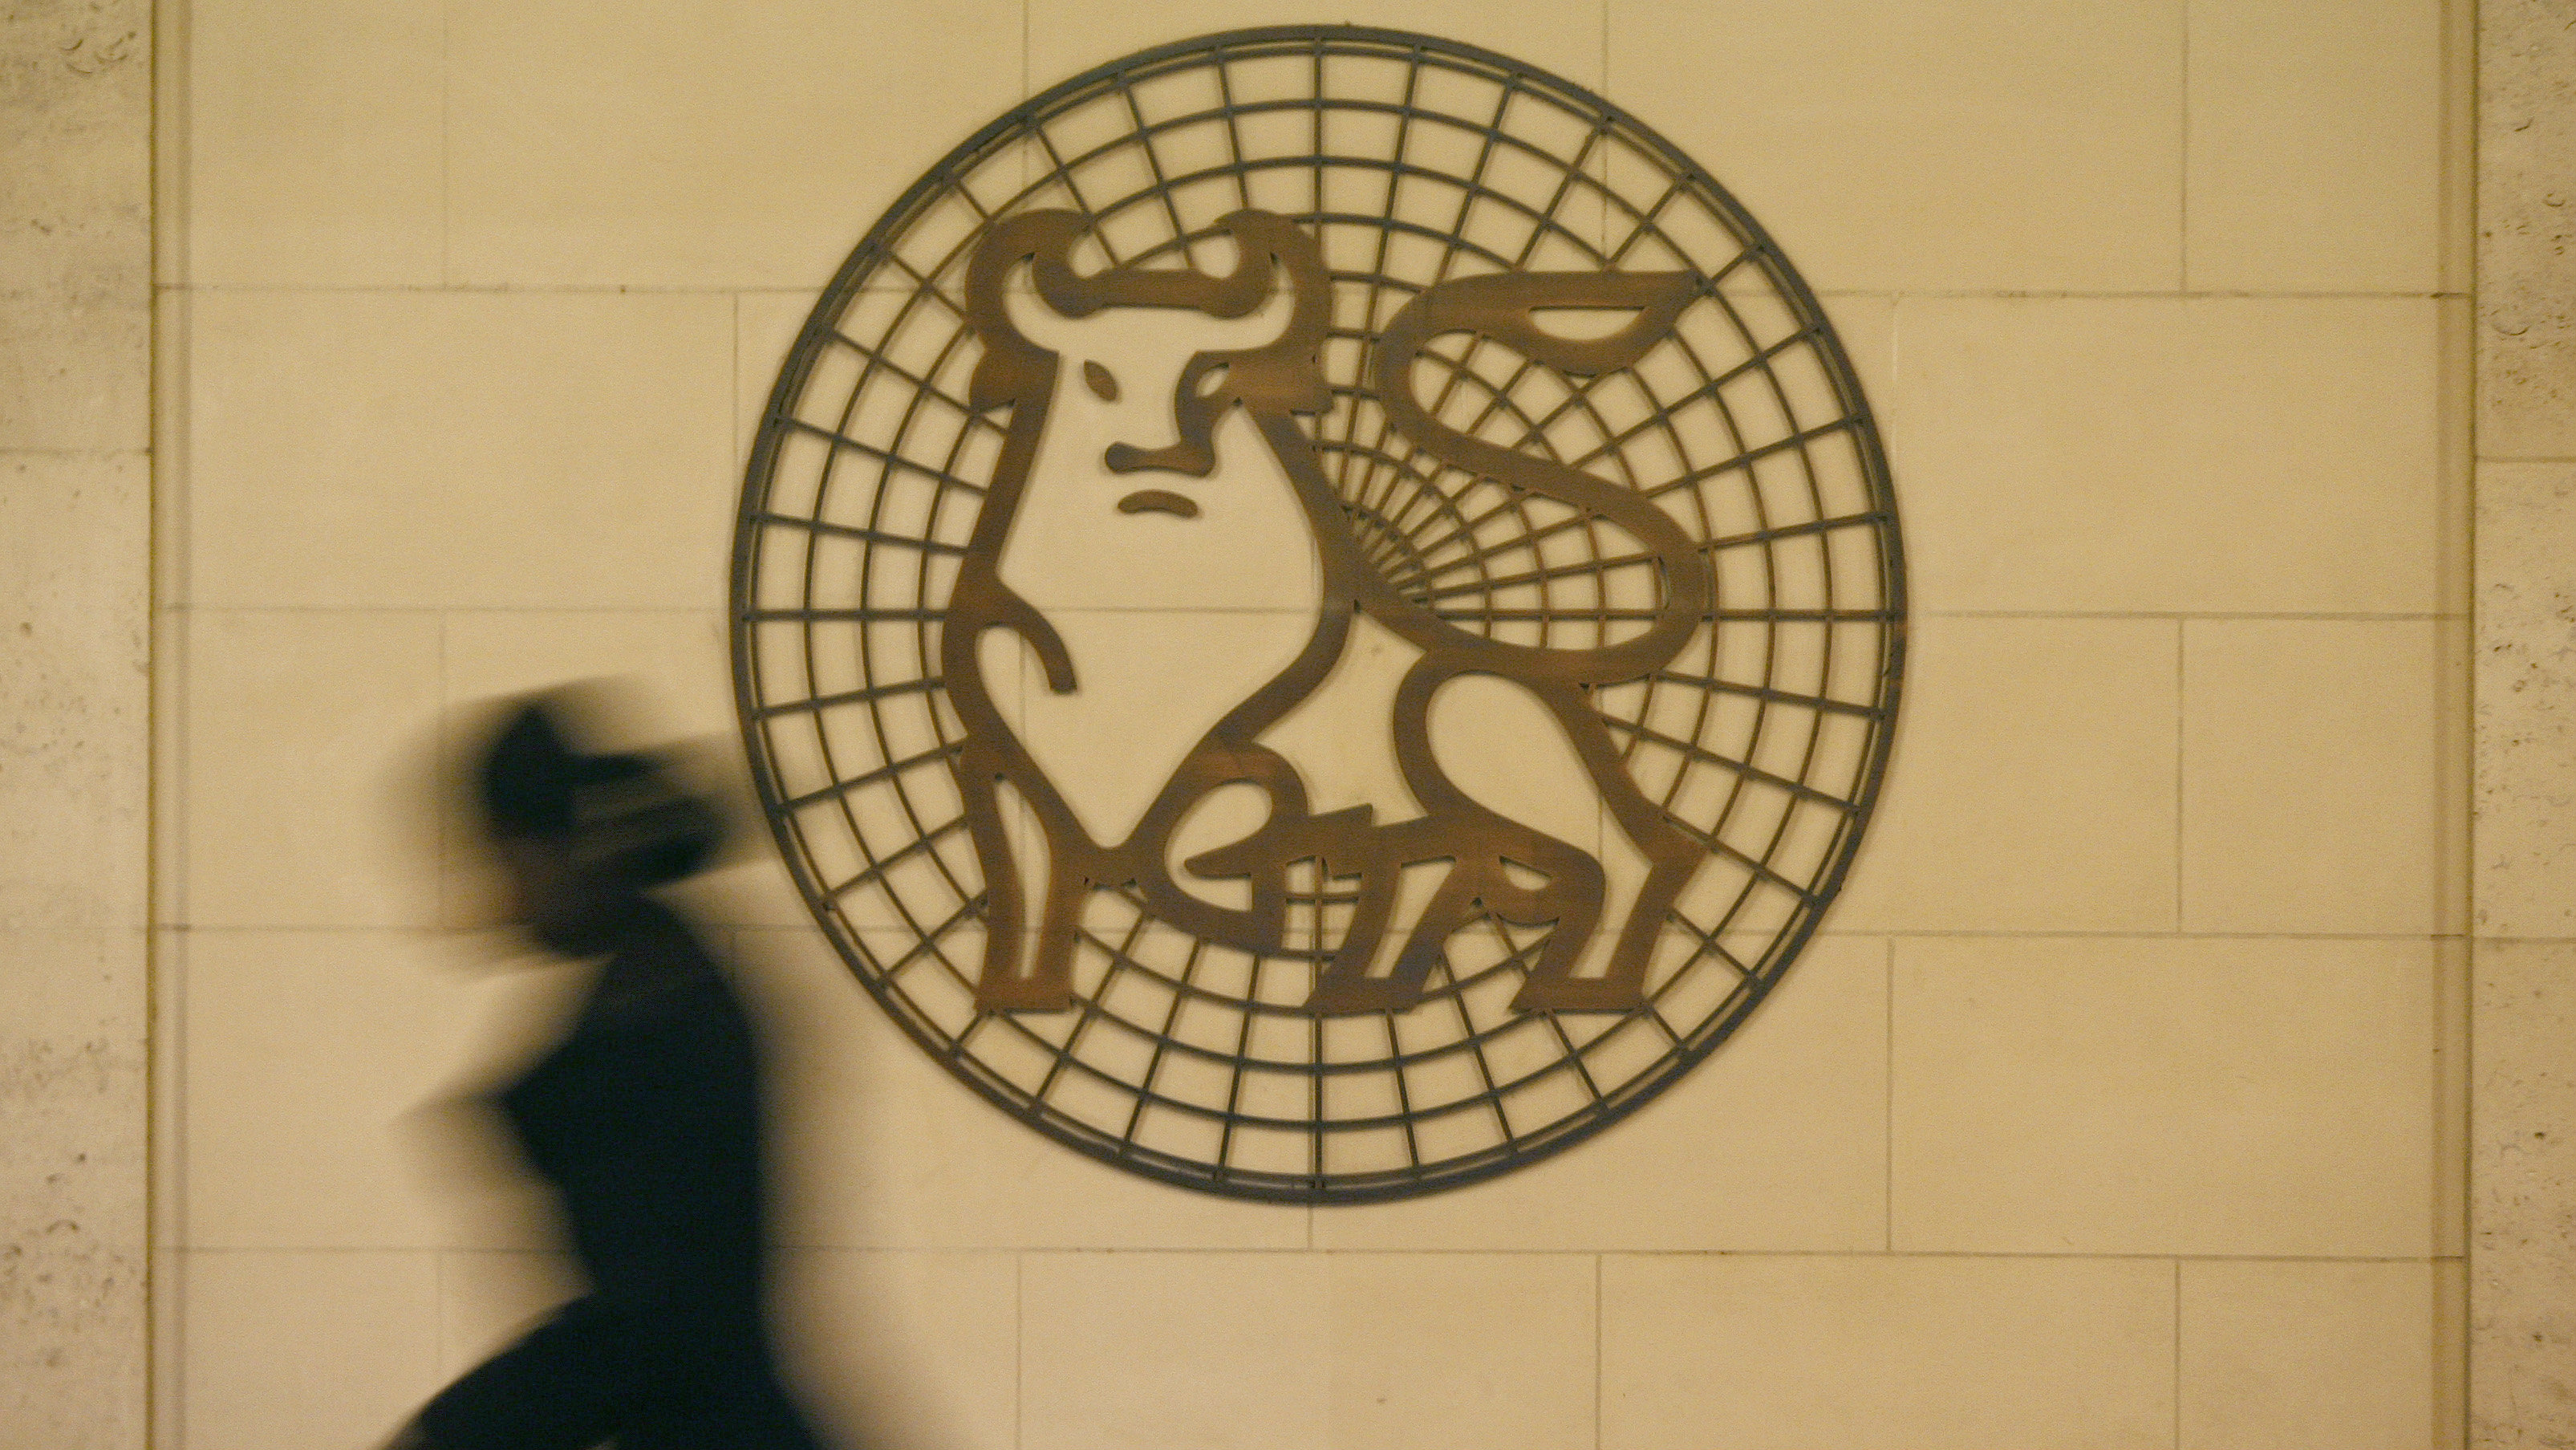 "A woman walks past the Merrill Lynch logo outside their offices in the City of London March 6, 2009. Merrill Lynch discovered a trading ""irregularity"" during a recent investigation of the troubled investment bank's London trading positions, the company said on Friday. The trading issue, which Merrill did not quantify, was the latest black eye for the bank, which agreed to be acquired by Bank of America Corp last Sept. 15, the same morning that Lehman Brothers Holdings Inc went bankrupt."